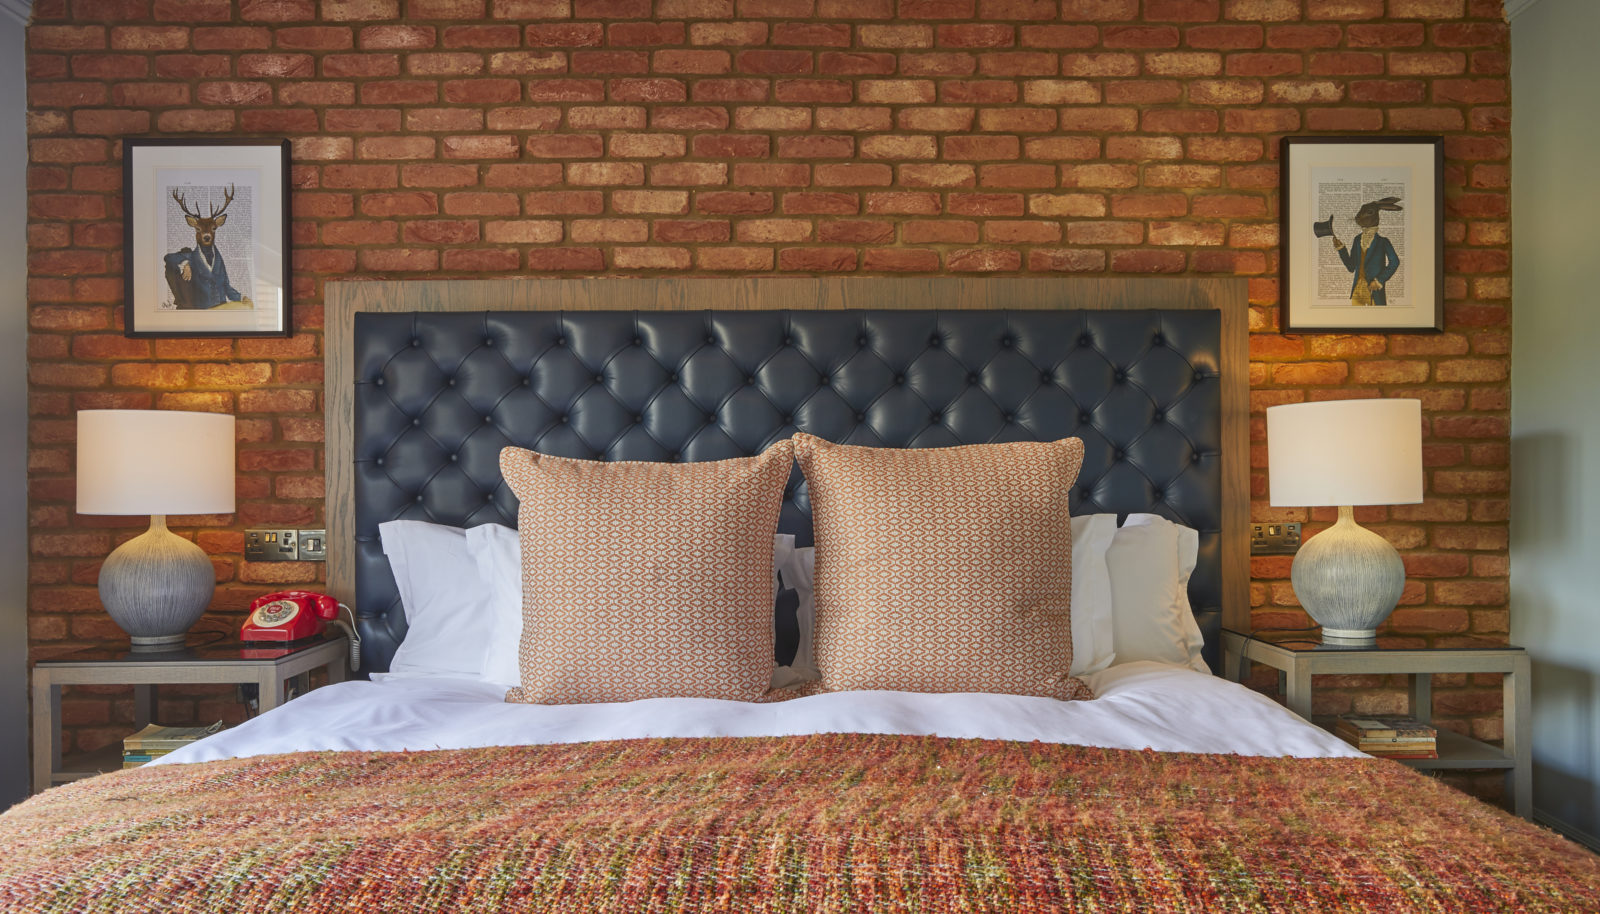 deluxe river view room with cushions on bed and brick wall and fun art